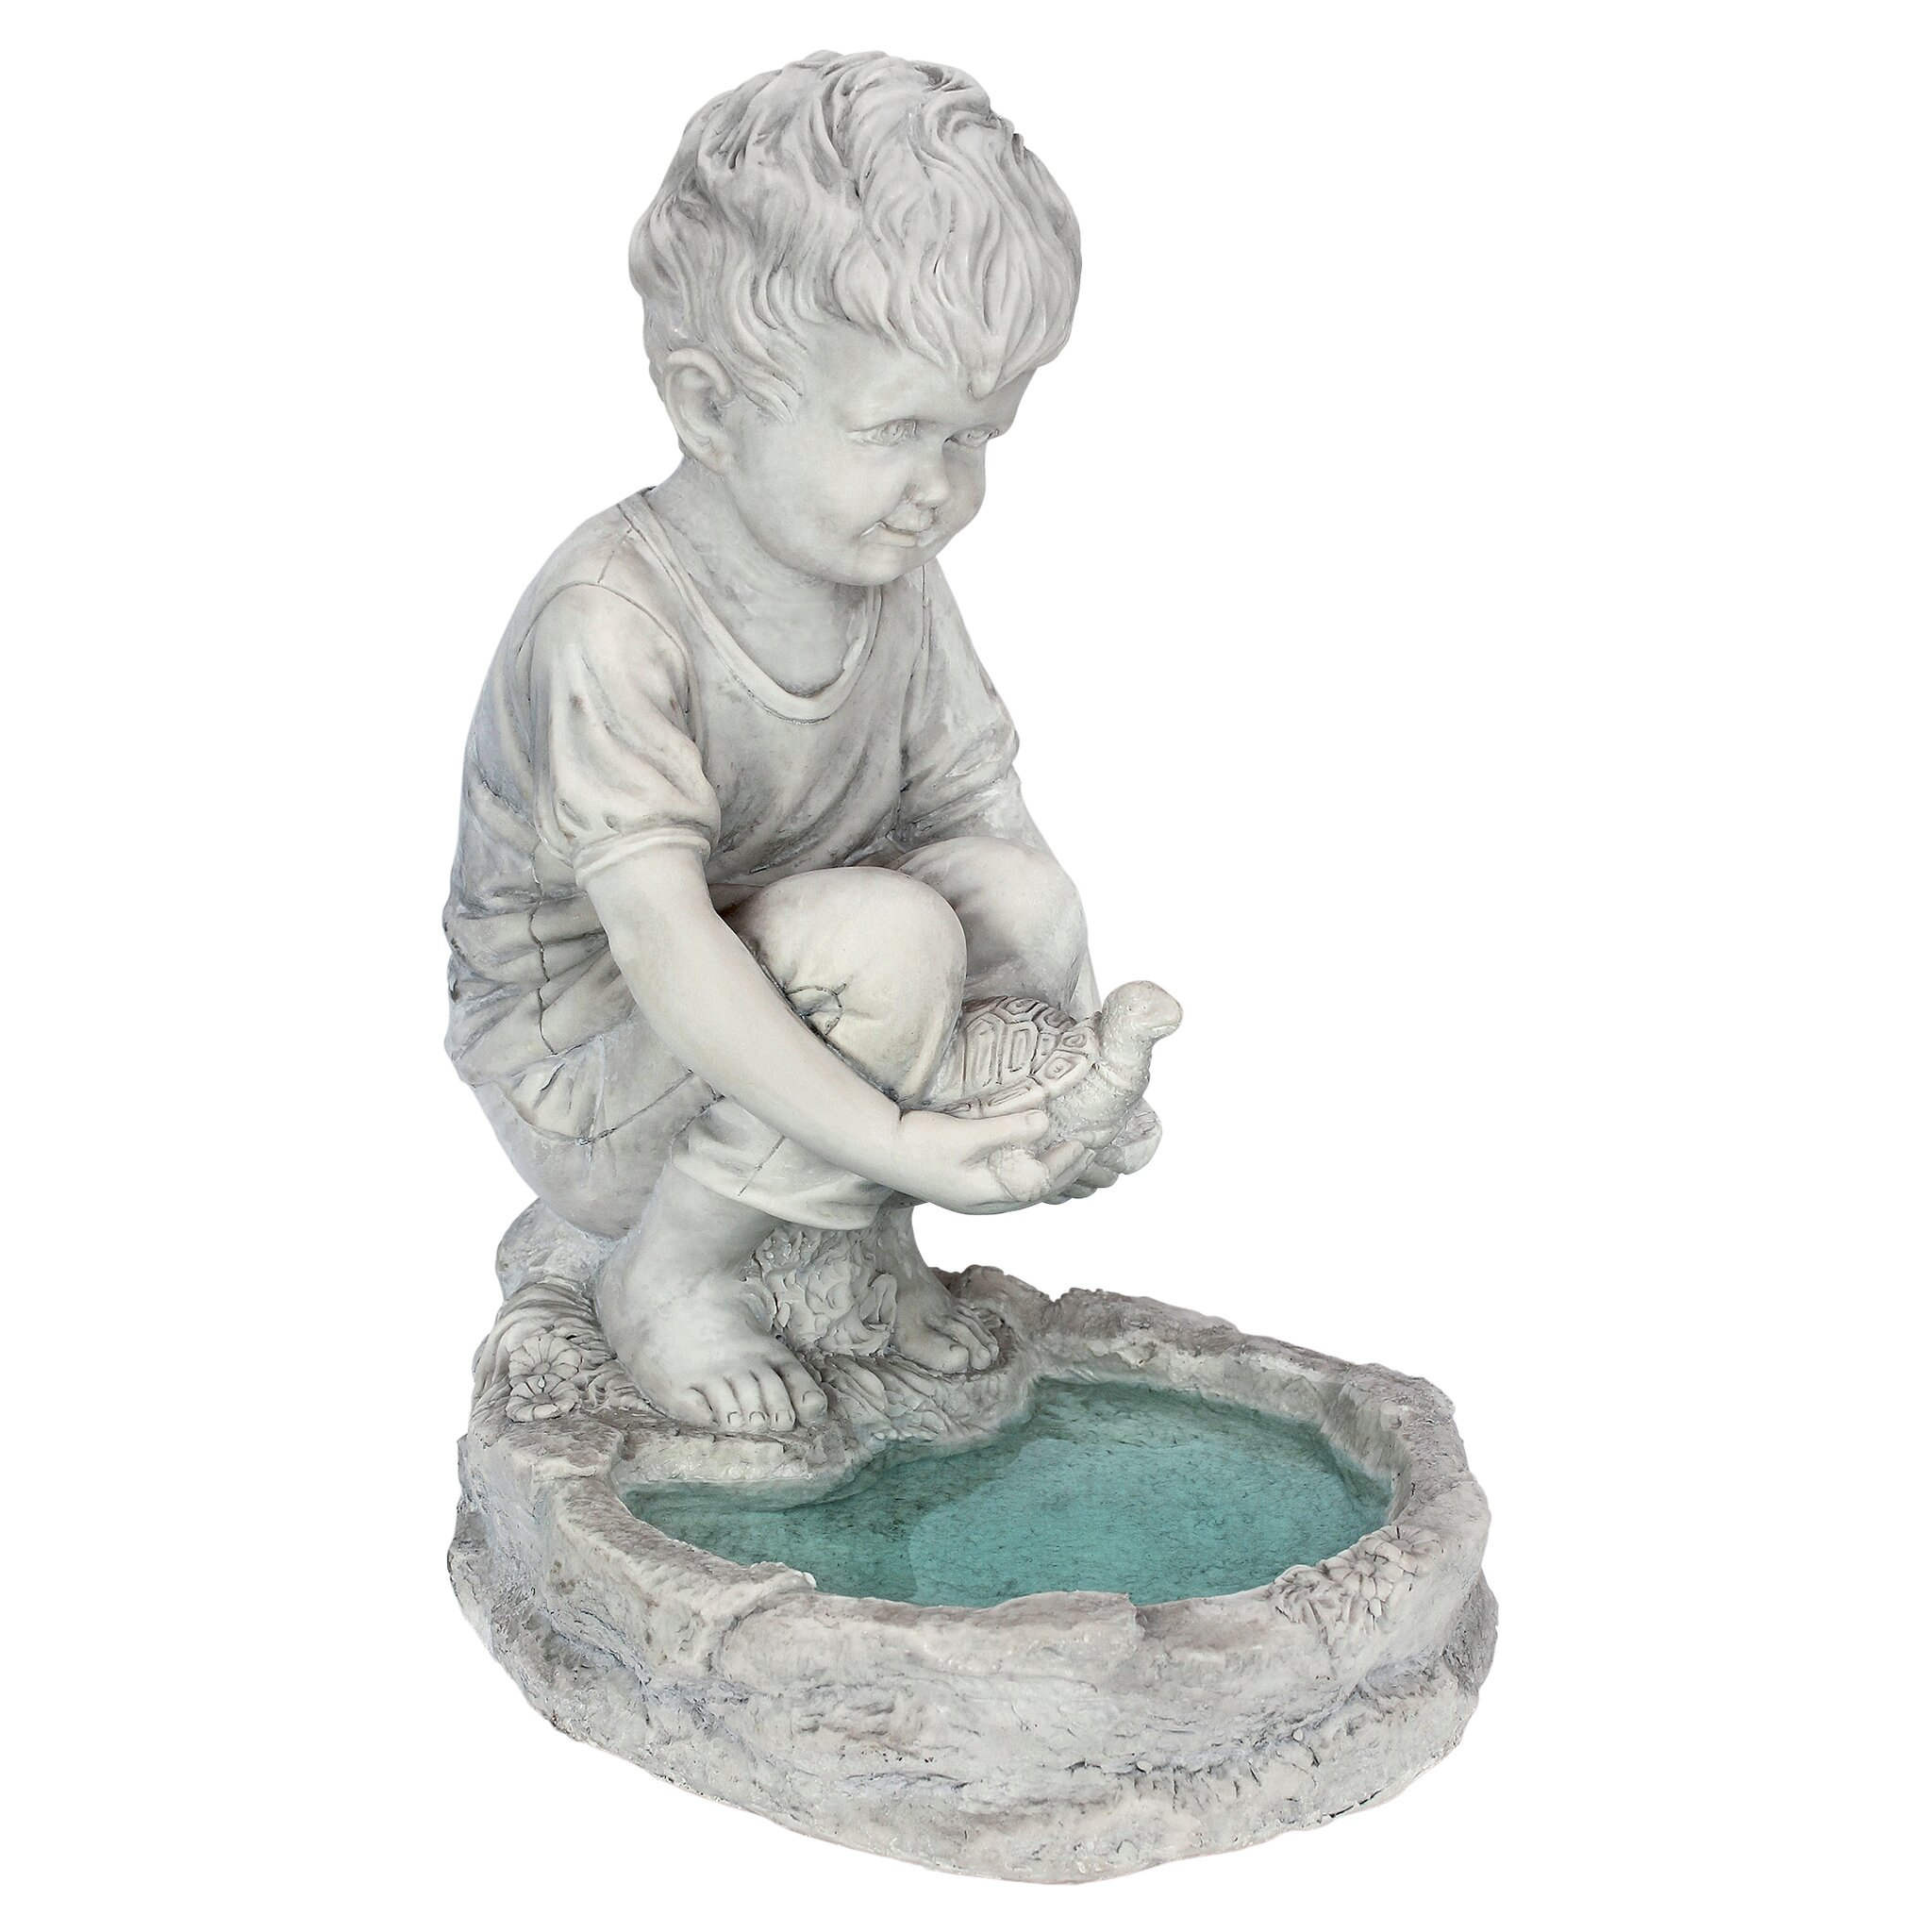 Stsatuette For Outdoor Ponds: Design Toscano Tommy At The Turtle Pond Little Boy Statue